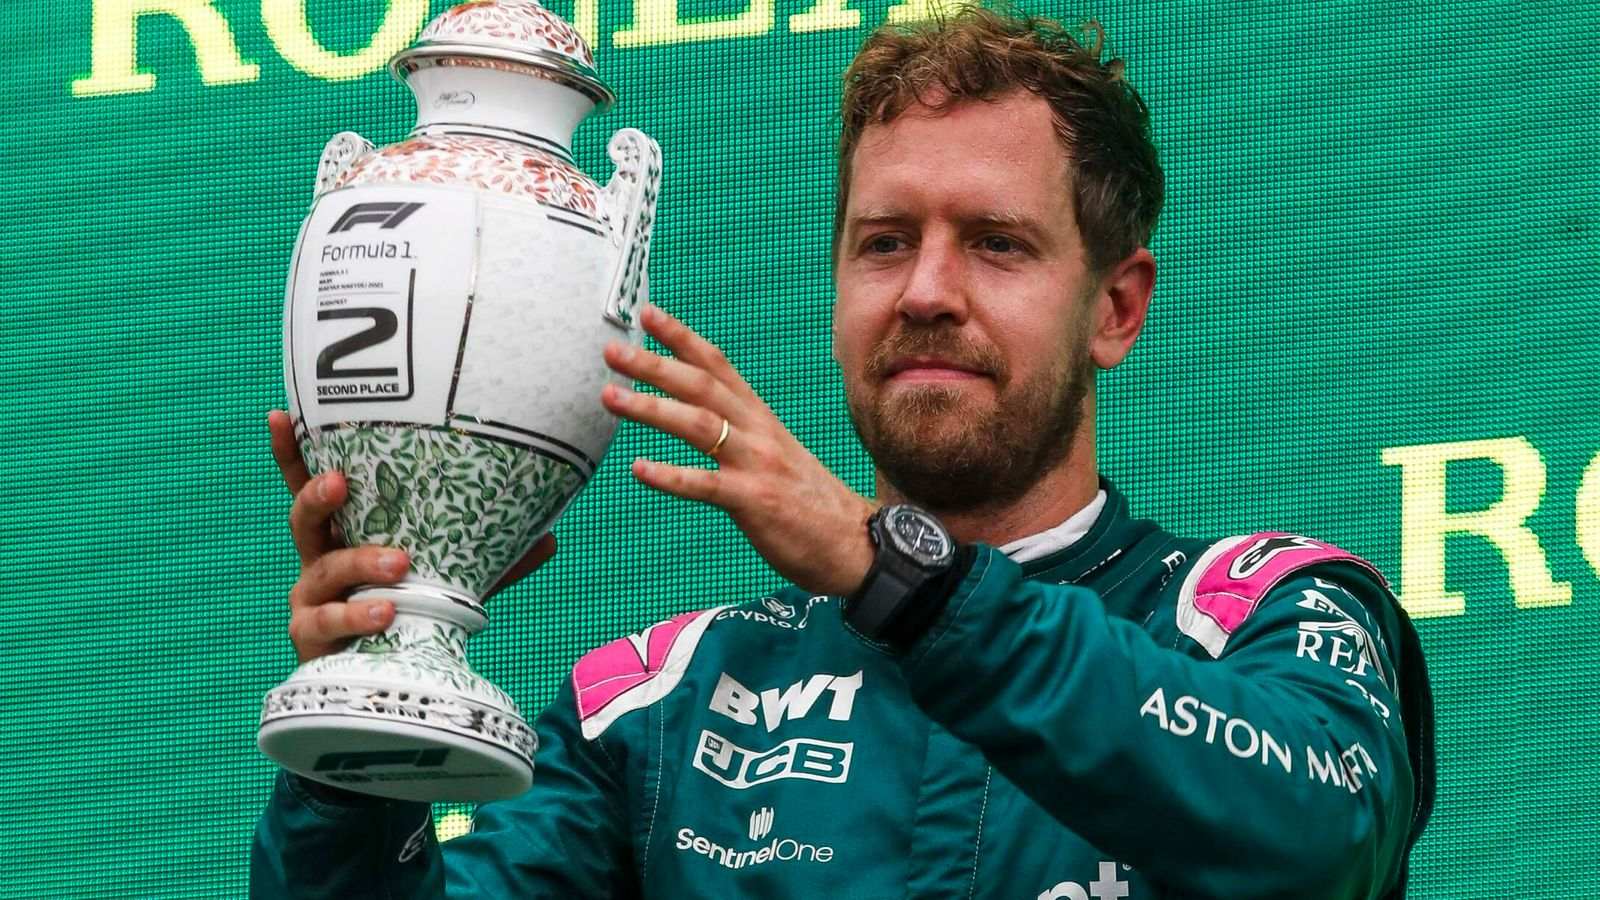 Sebastian Vettel Hungarian GP disqualification: Aston Martin confirm appeal and right of review request